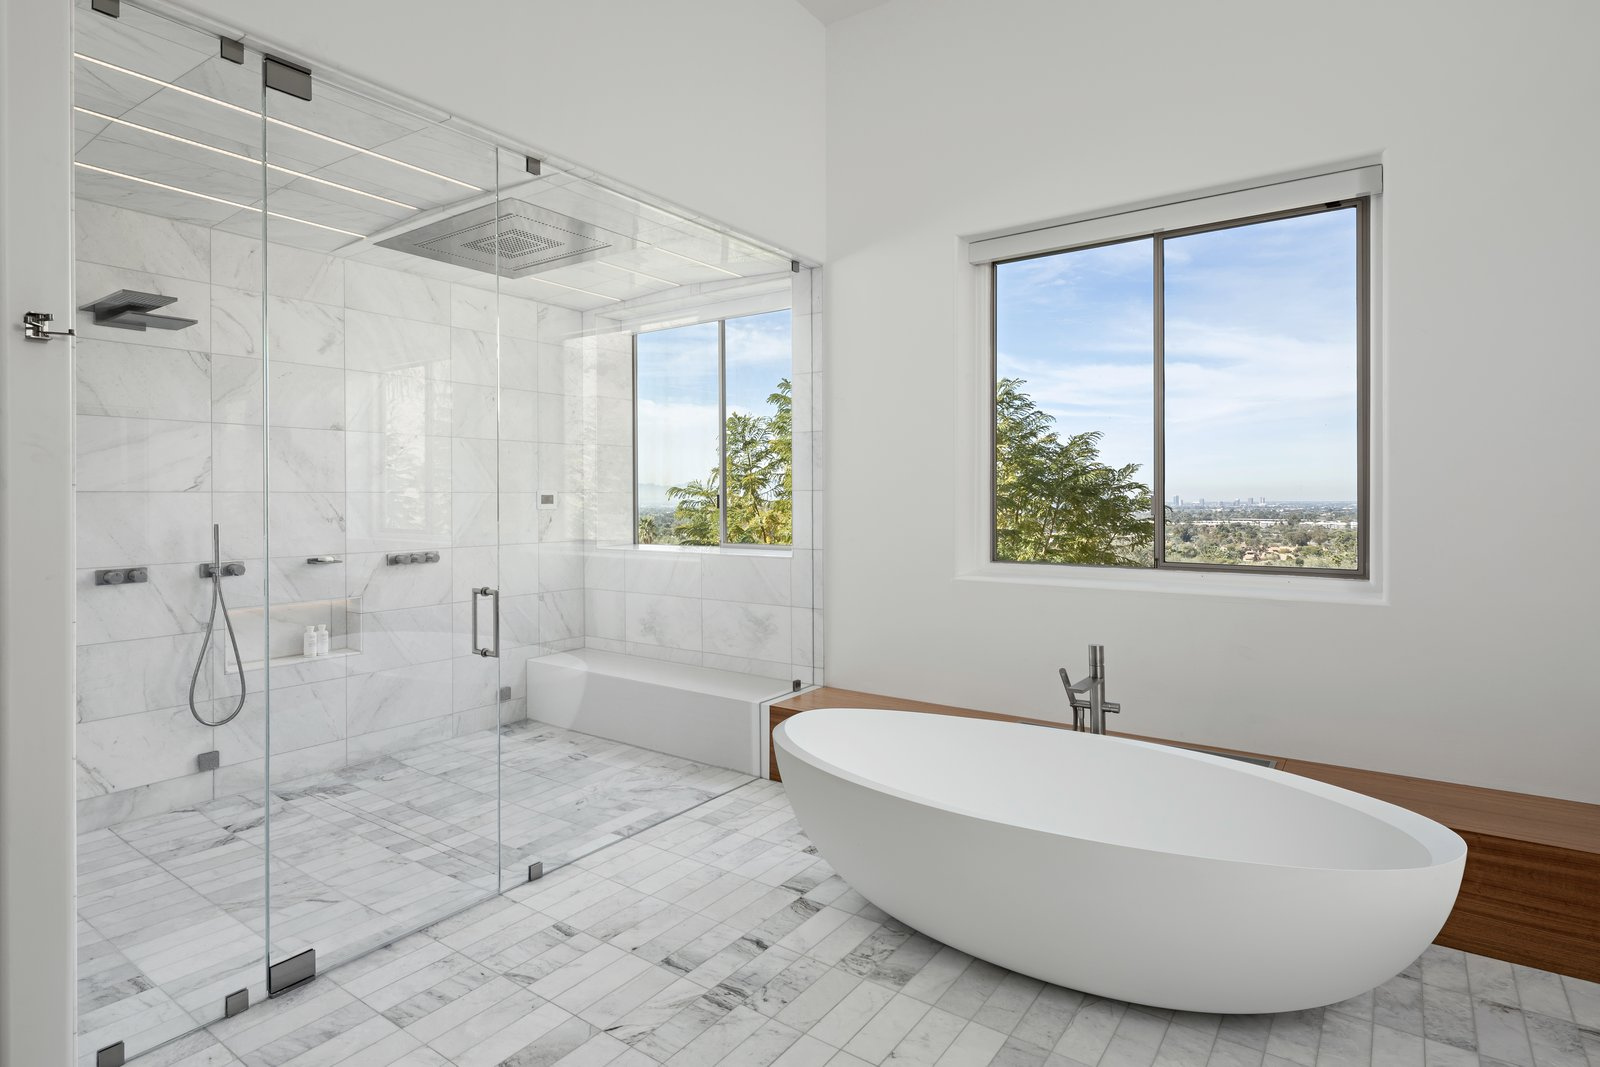 Freestanding tub and Steam Shower with views of downtown Phoenix